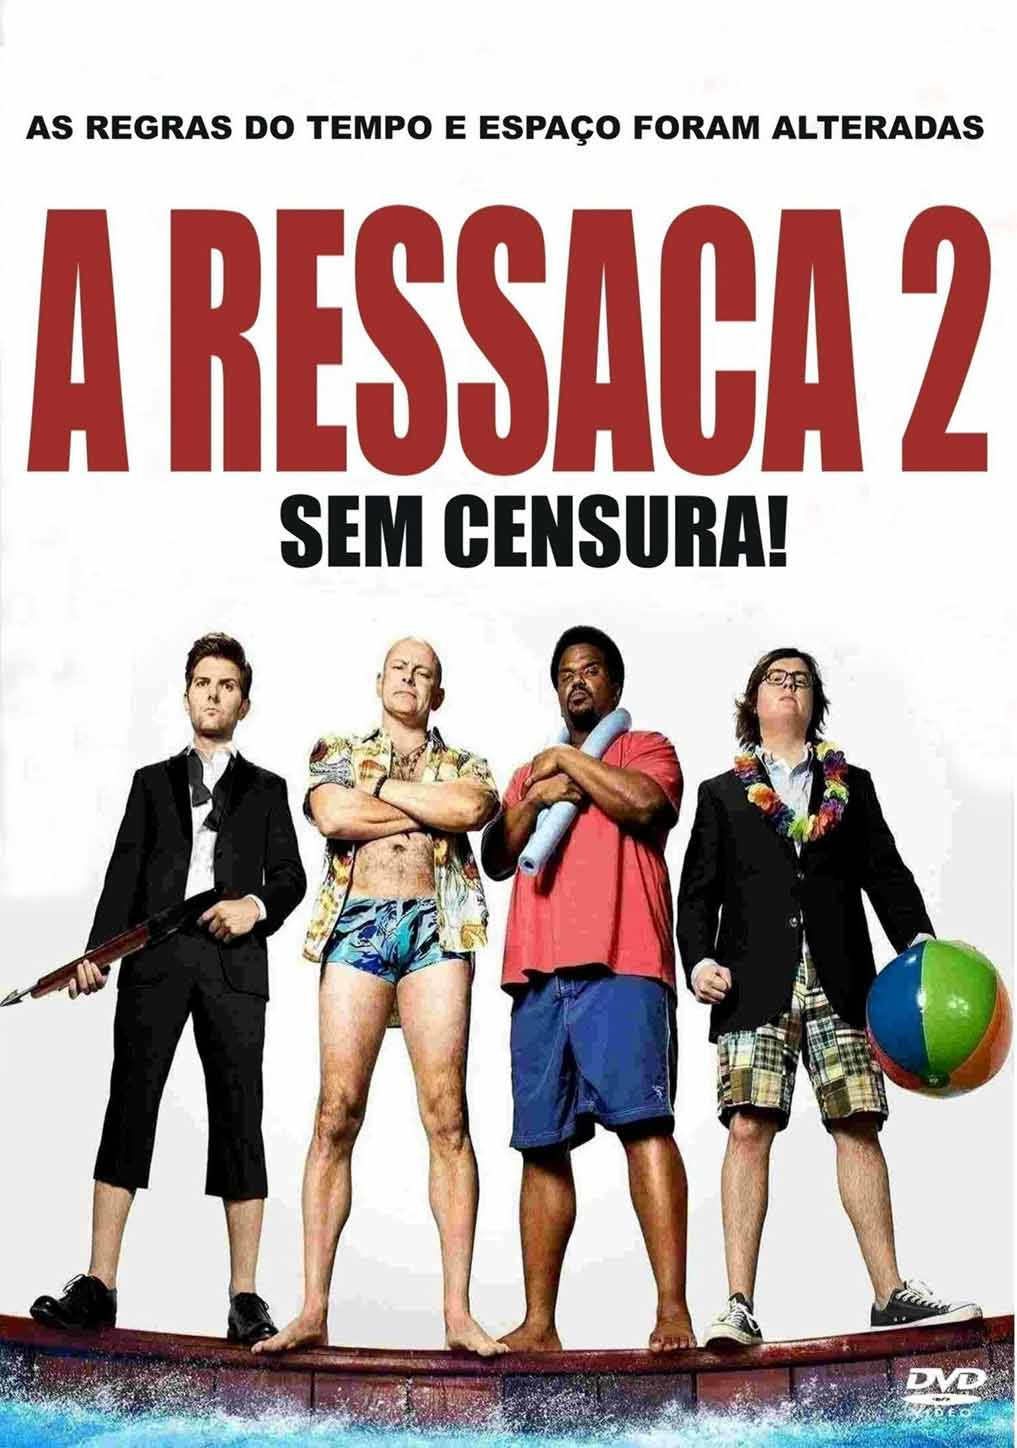 A Ressaca 2: Sem Censura Torrent - Blu-ray Rip 1080p Dual Áudio (2015)